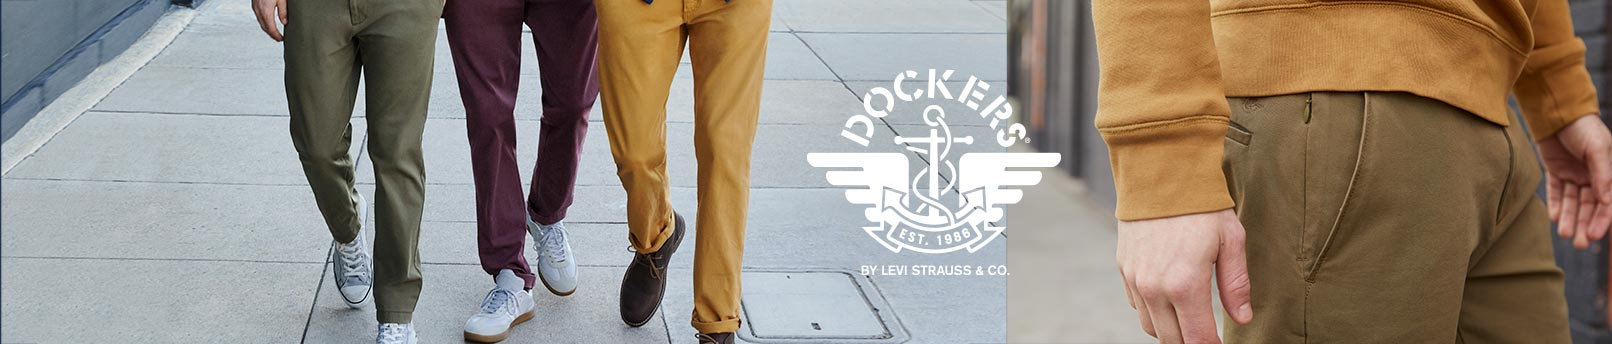 Discover Dockers